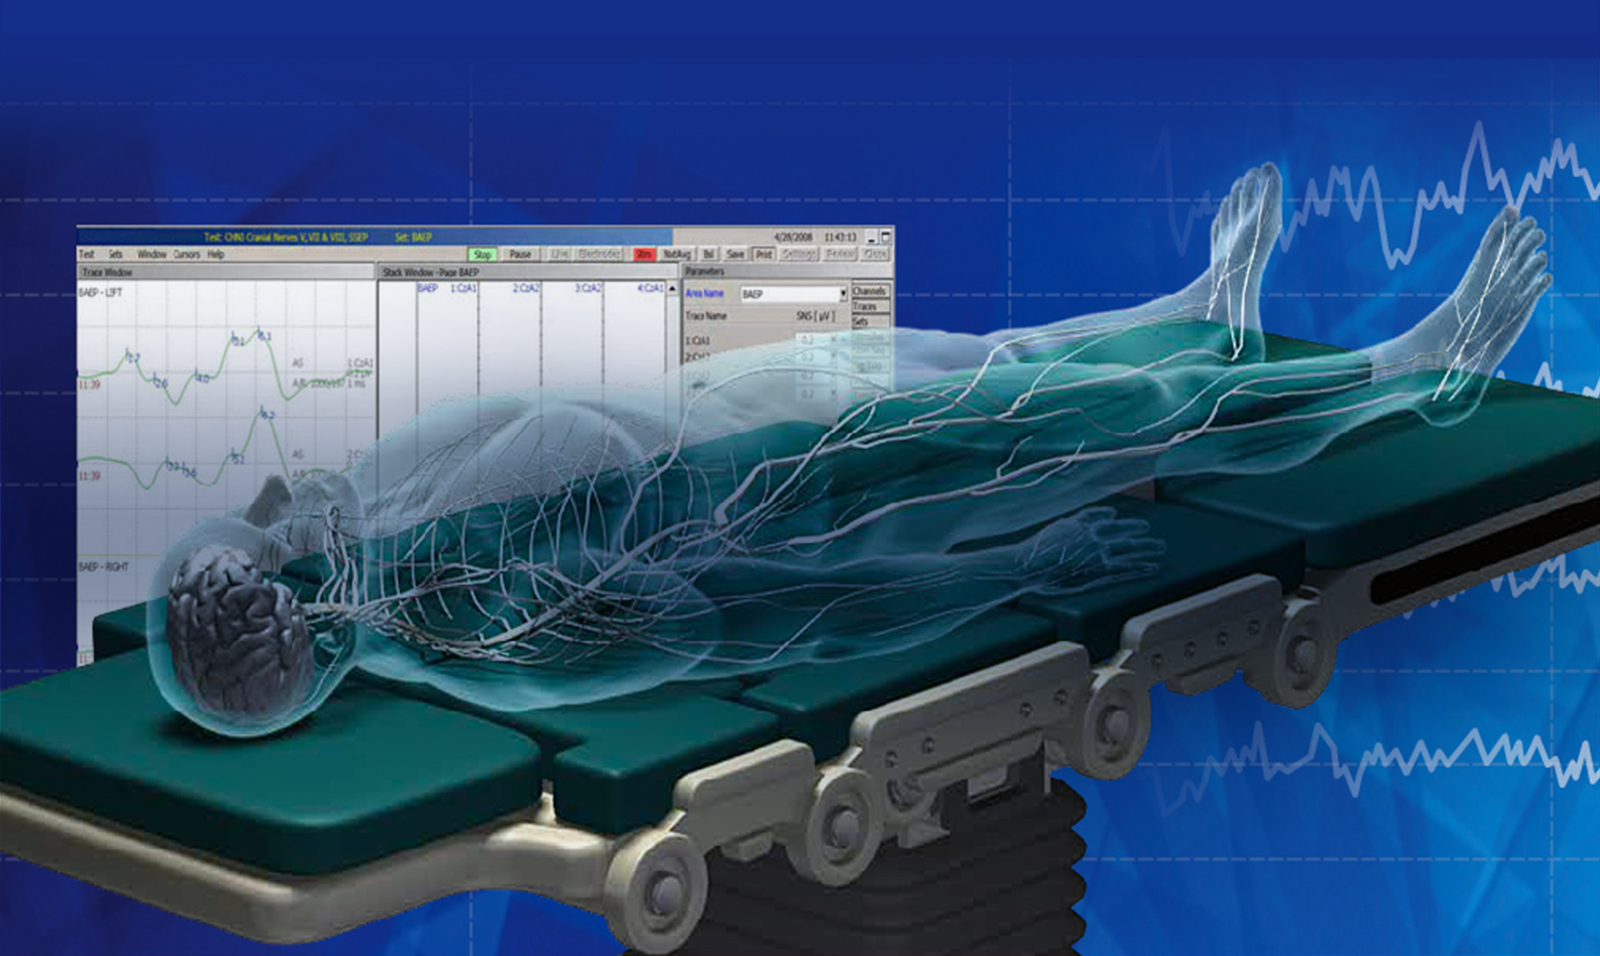 ionm market in the us Global intraoperative neuromonitoring market 2017-2021: ionm market in the us 2016 2017 global intraoperative neuromonitoring market forecast 2017-2025.